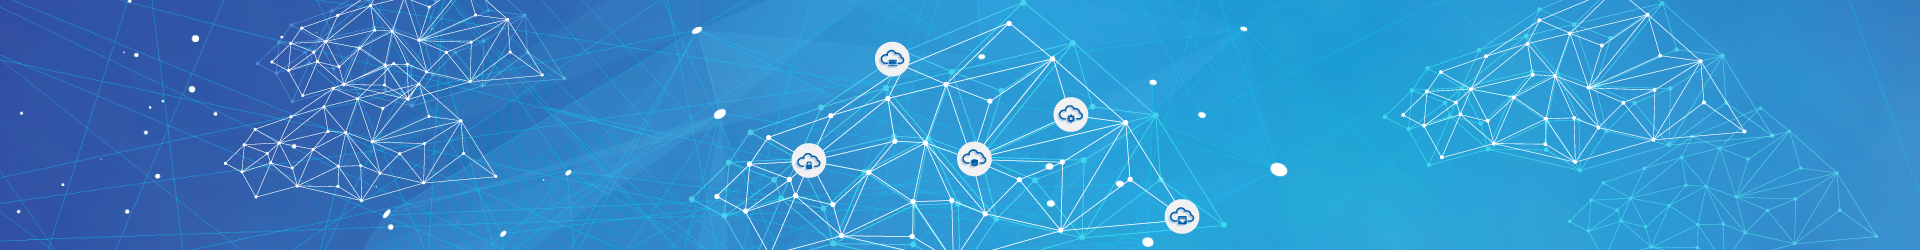 Cloud Product Image